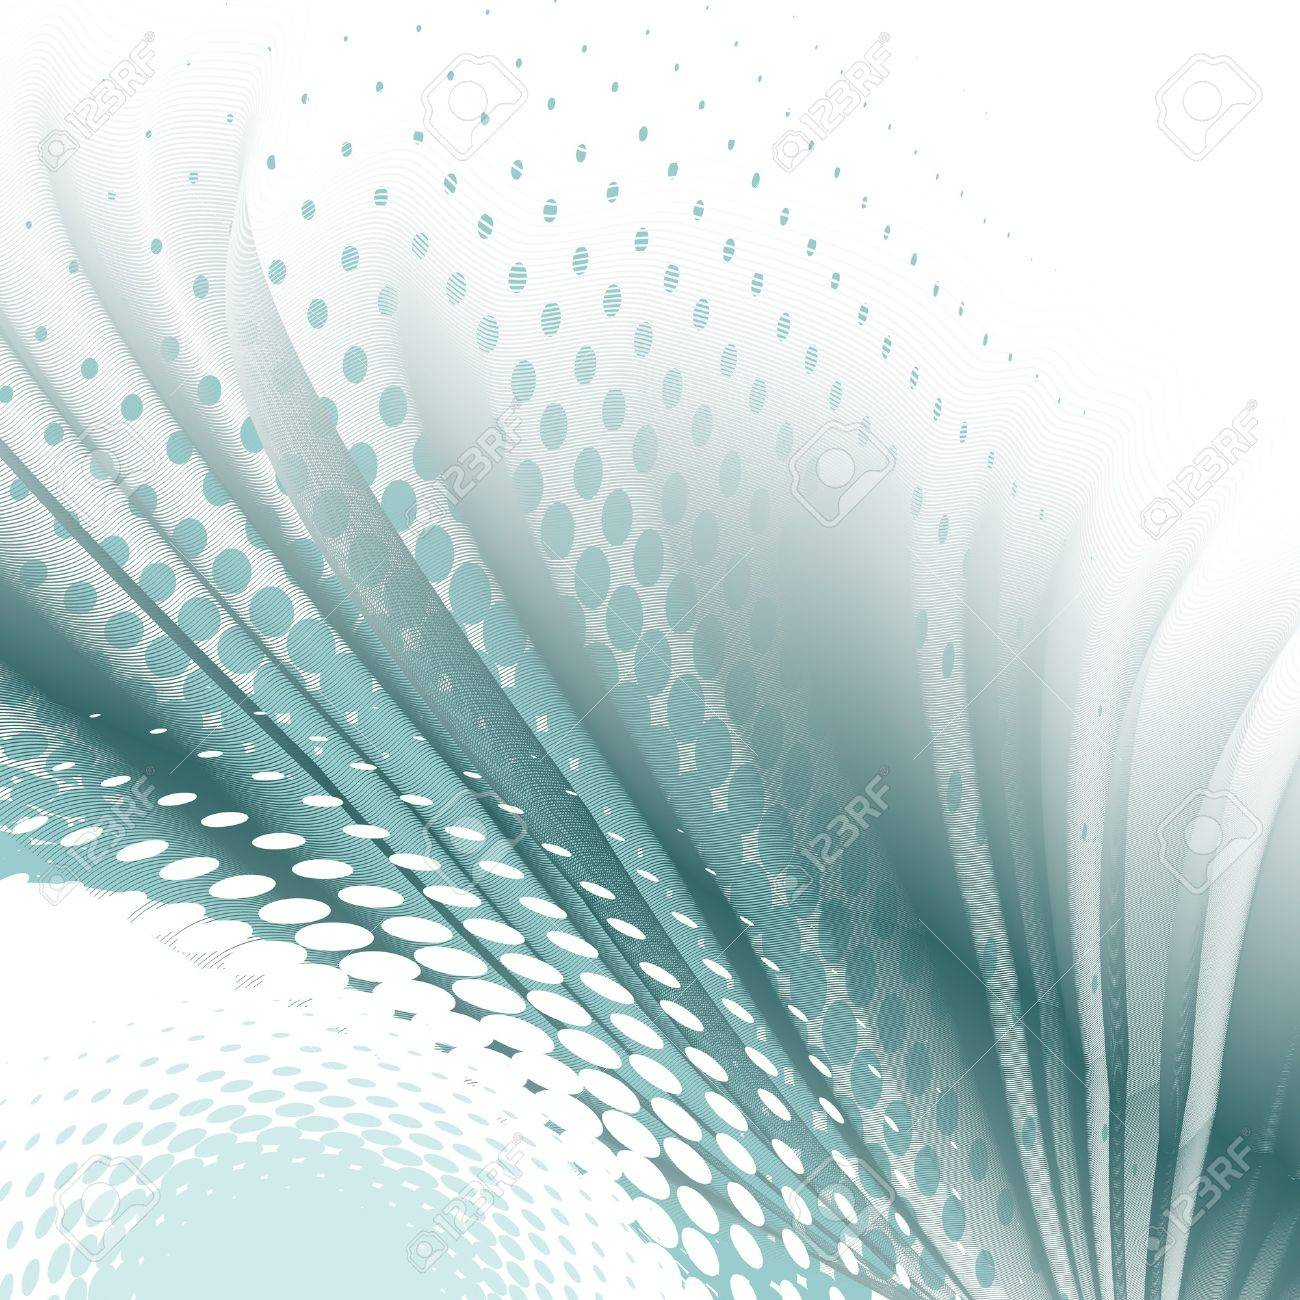 abstract background - 7205512